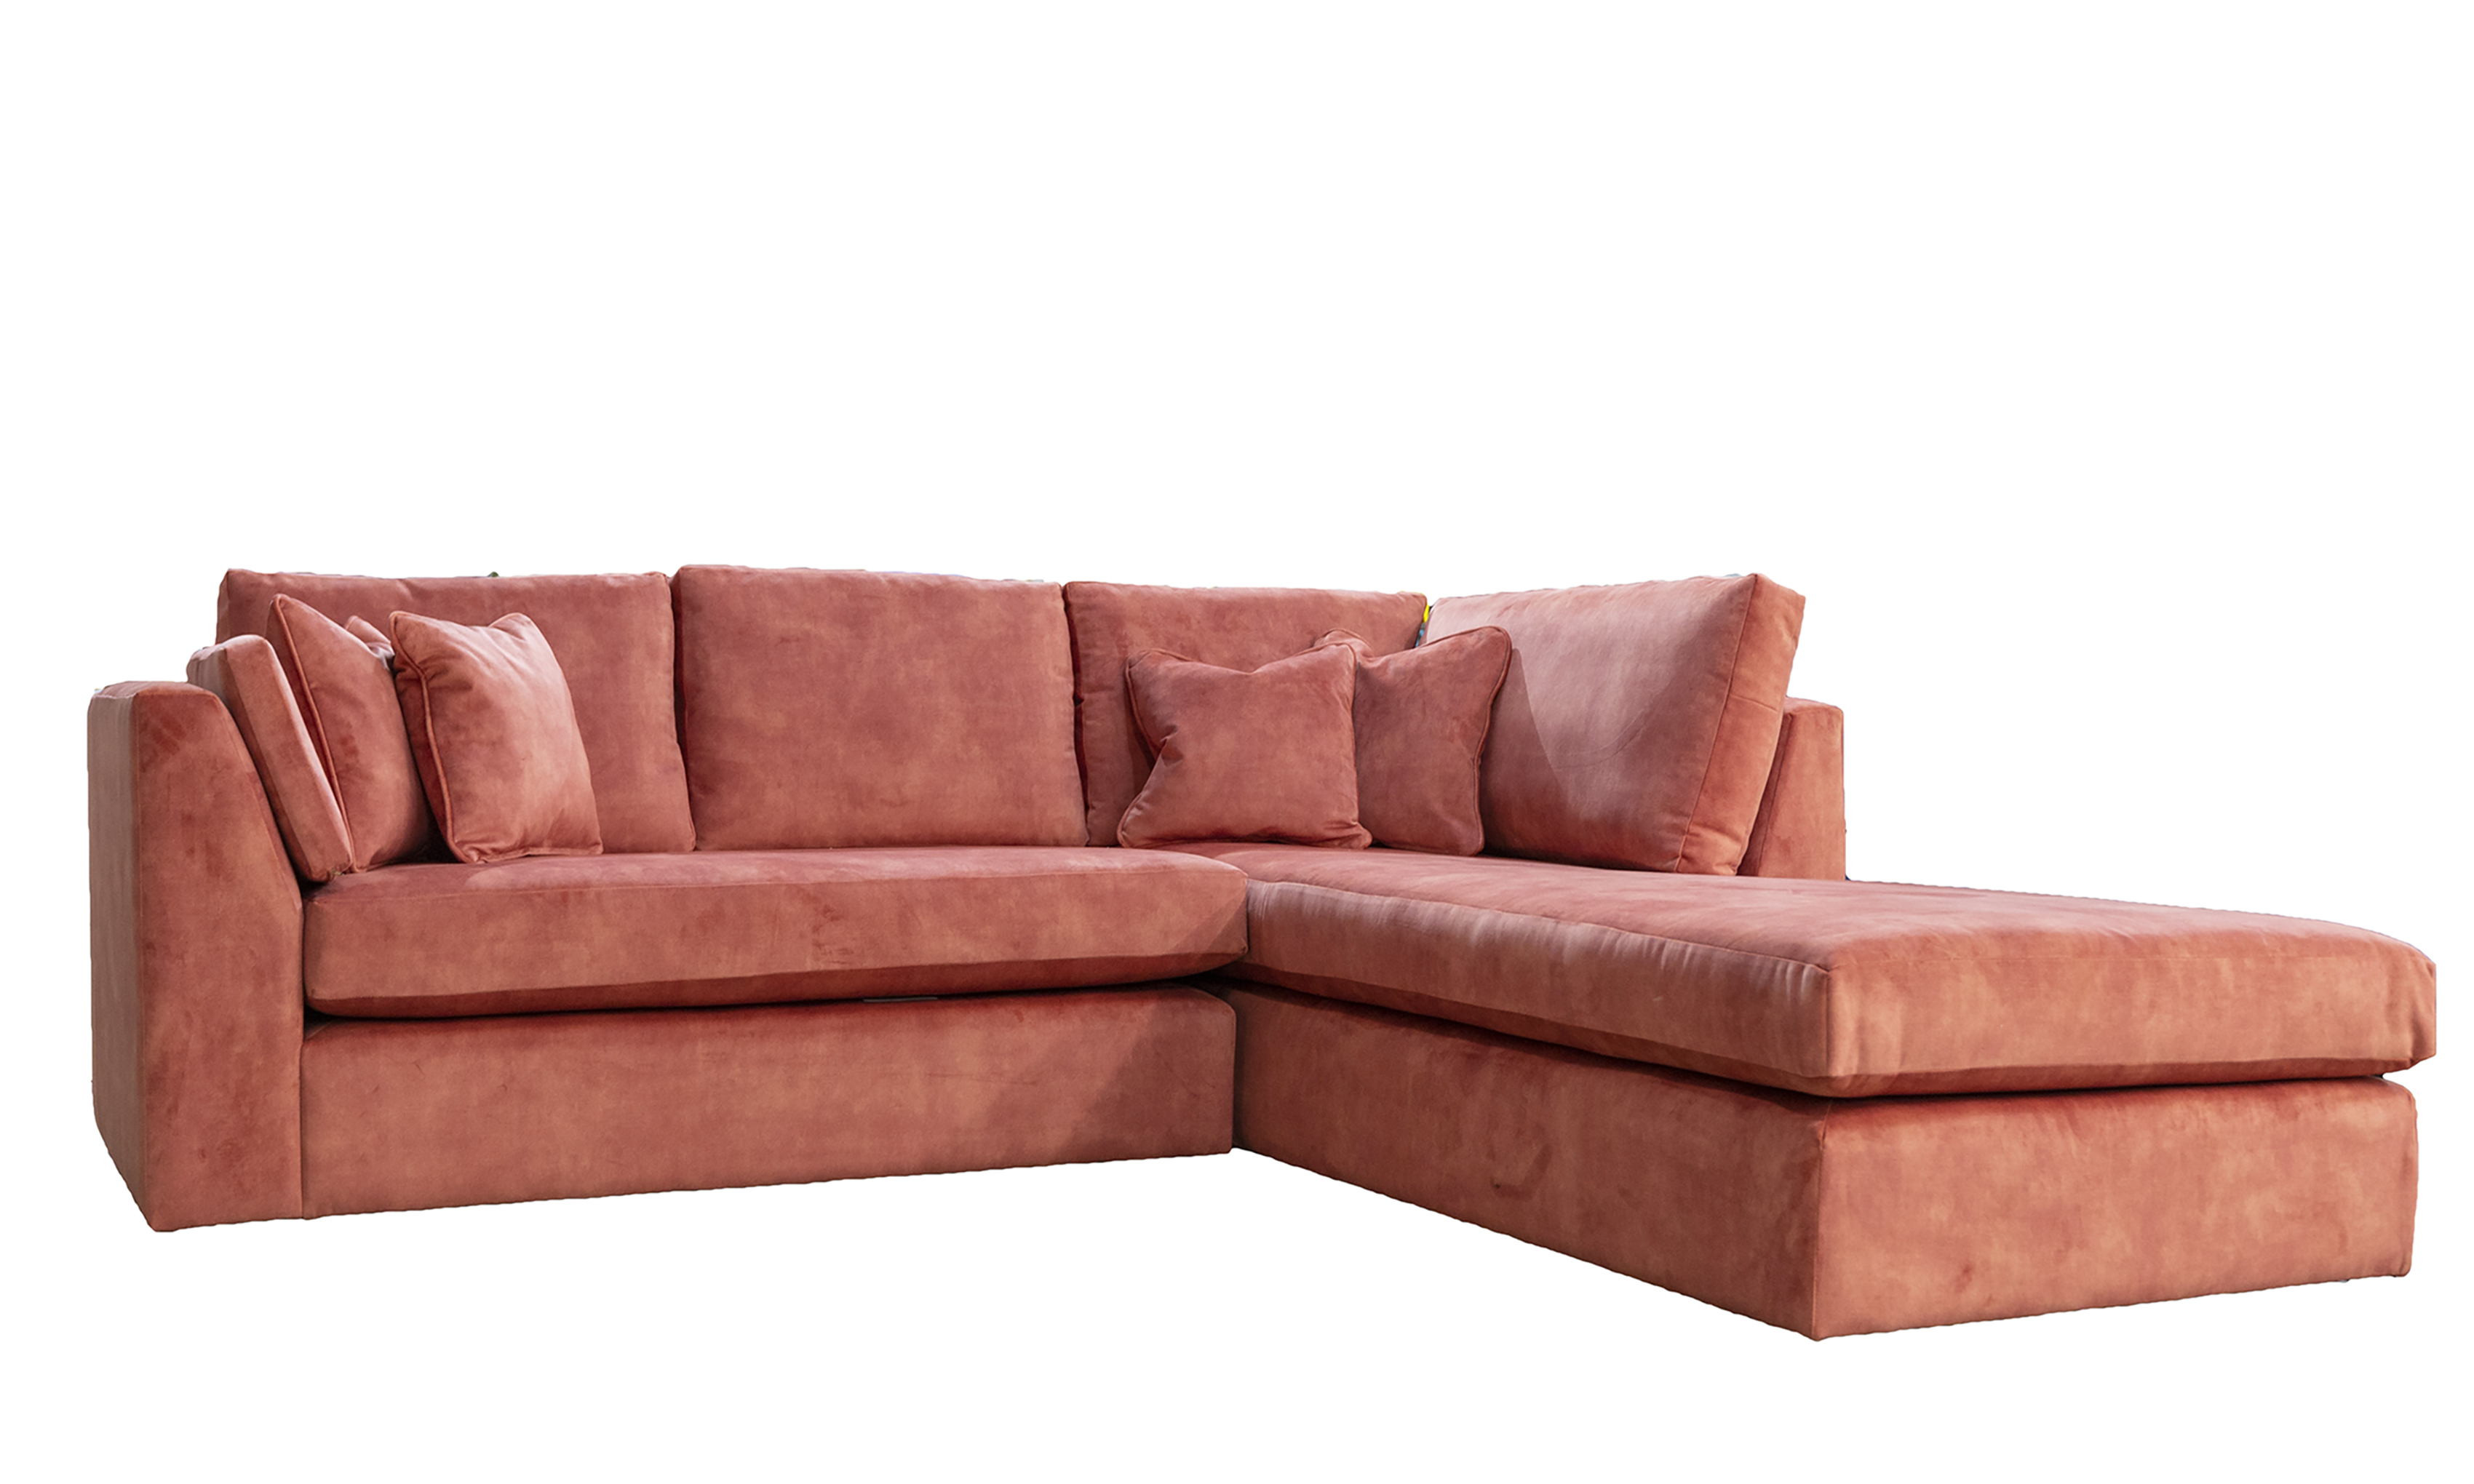 Como-Chaise-Sofa-in-Lovely-Coral-Gold-Collection-Fabric